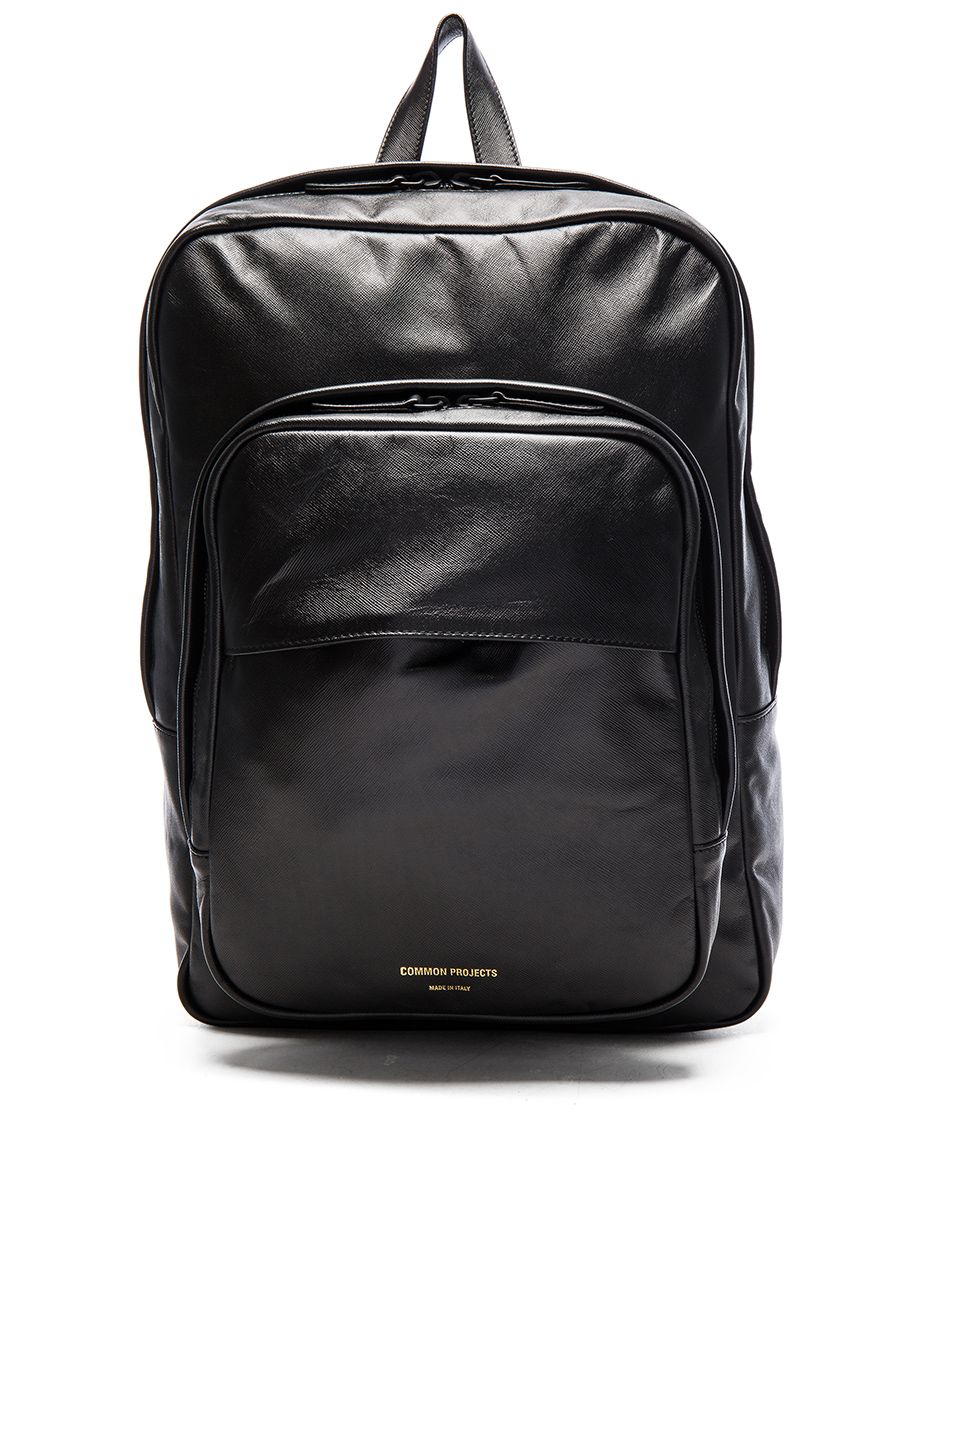 6e3b3793c3 Common Projects Leather Backpack  Common Projects Leather Backpack ...